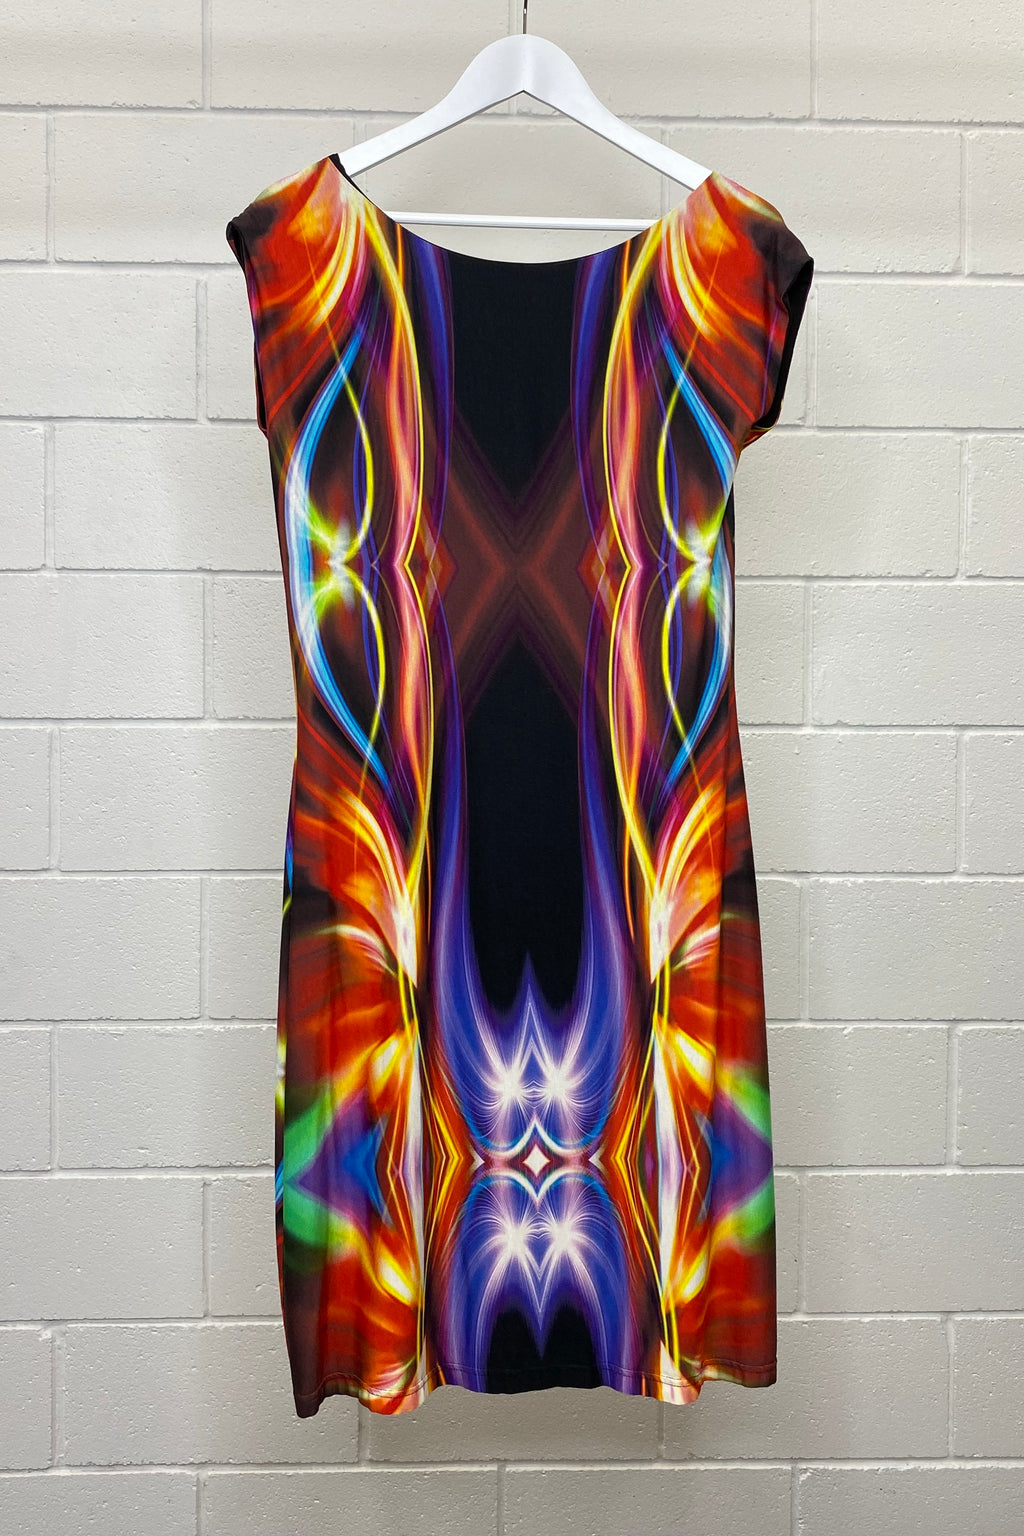 RAINBOW FORM FIT SIZE 14 | DRESS (Preloved)